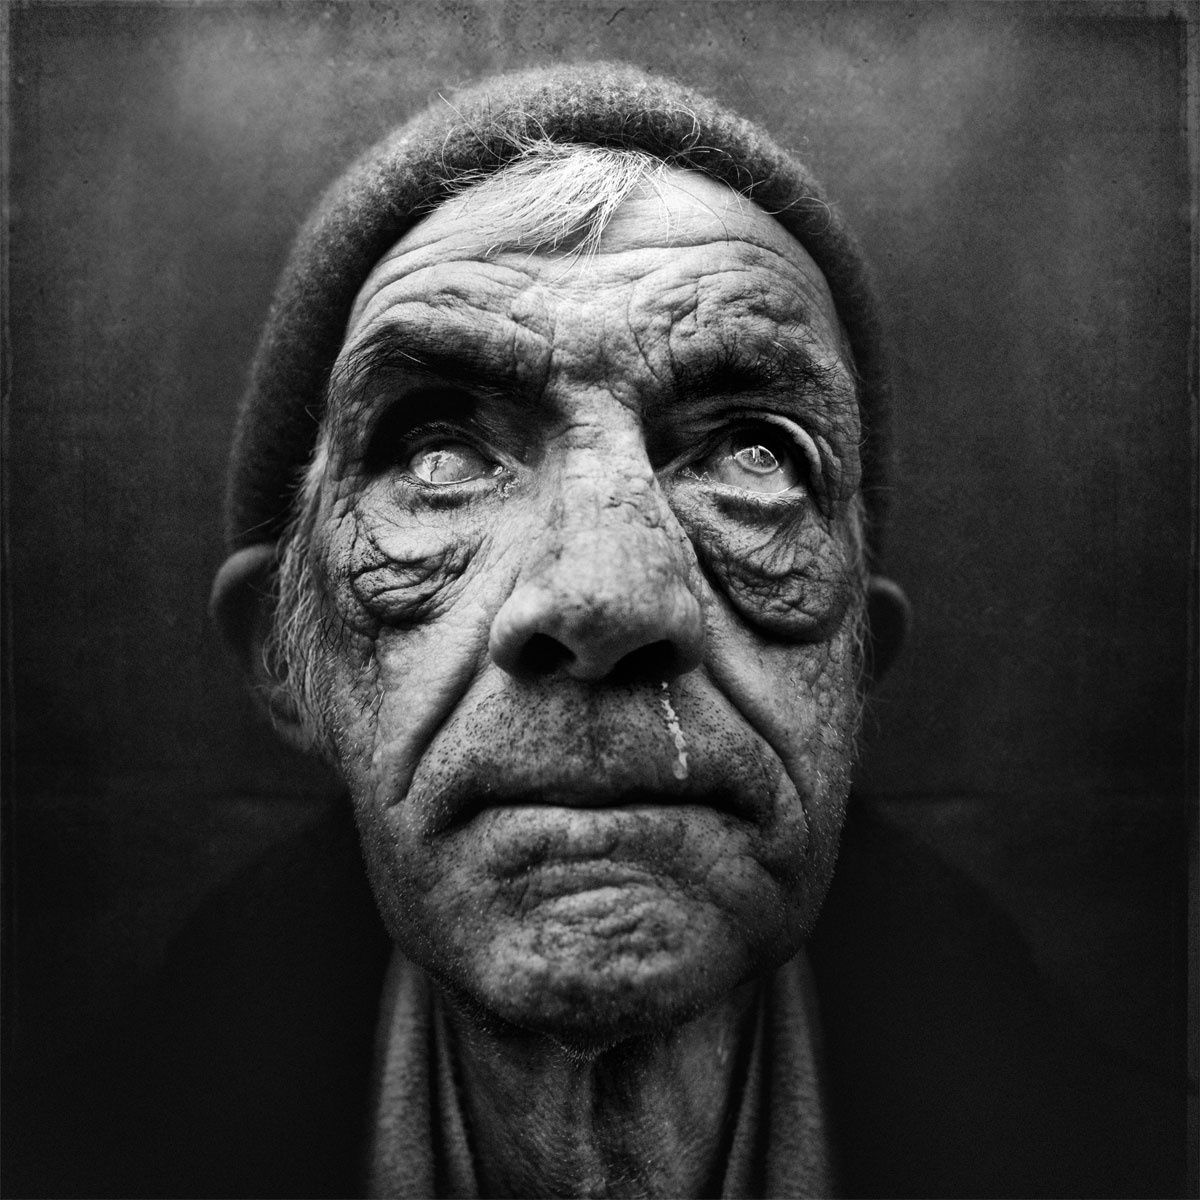 Lee Jeffries - What We Are